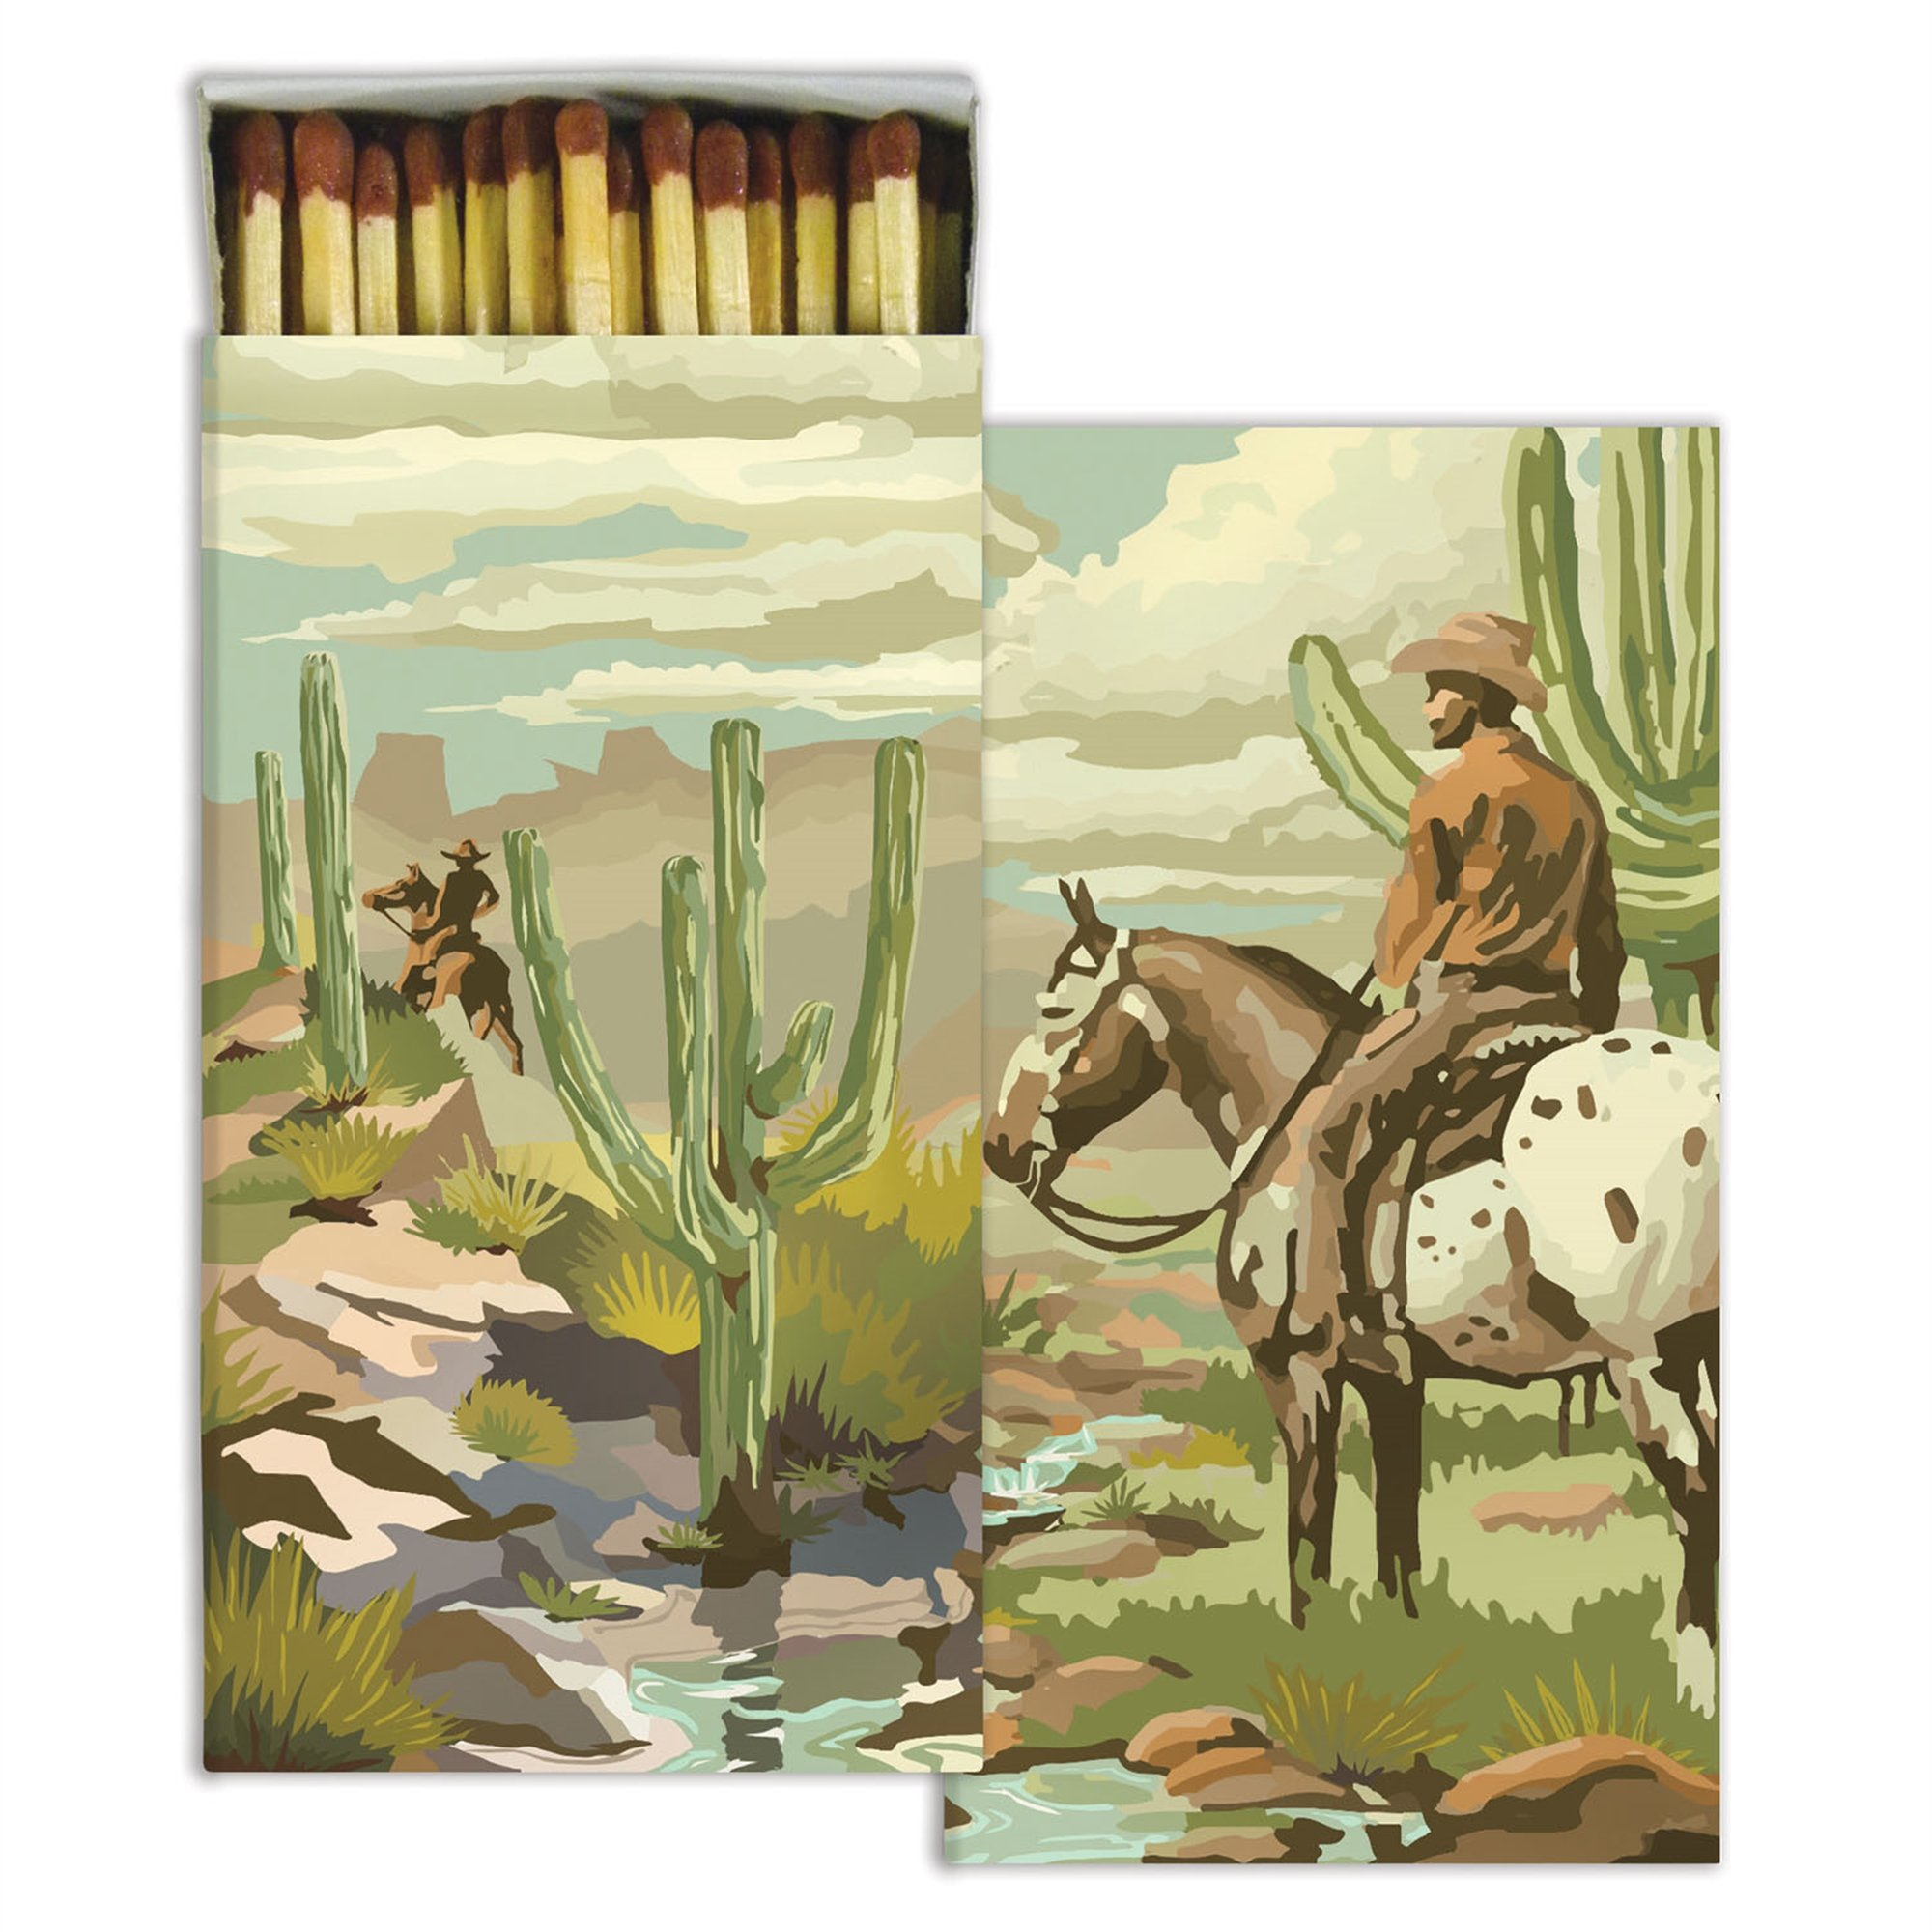 HomArt - Match Box Set of 2 - Cowboy